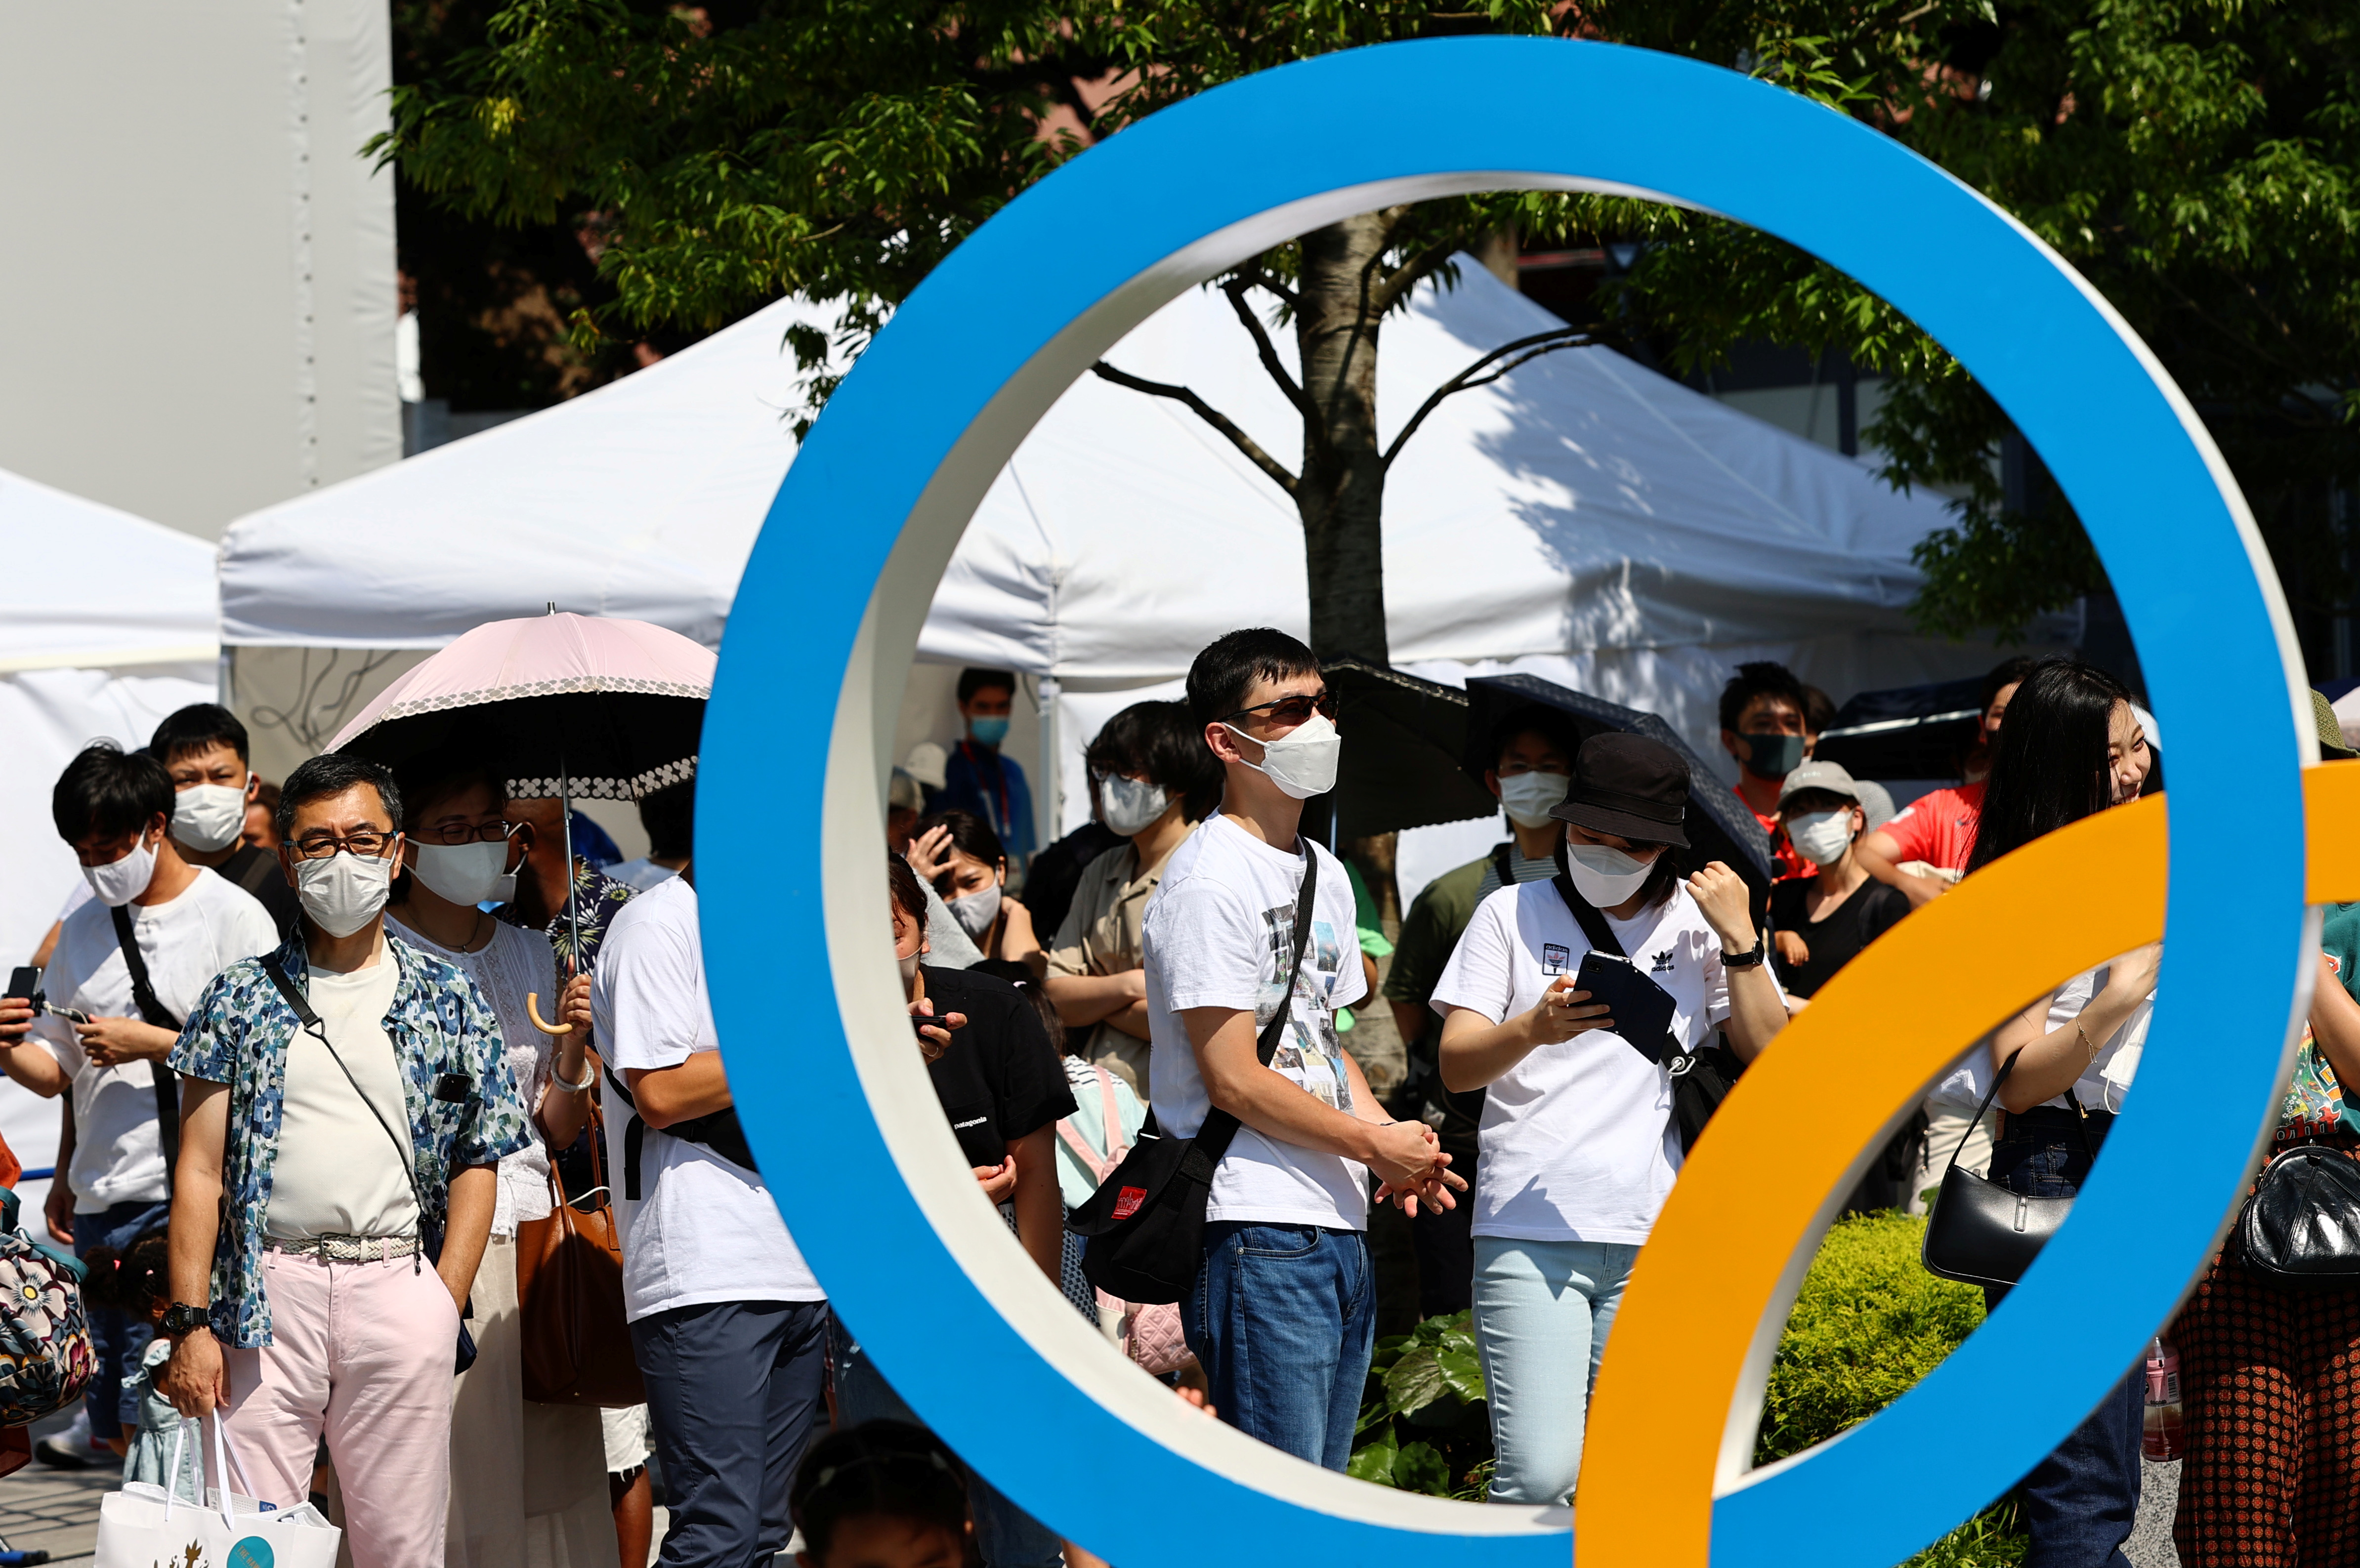 People wearing protective face masks stand in line to take a picture with an Olympic Ring outside the National Stadium, the main venue of the Tokyo 2020 Olympic Games, in Tokyo, Japan, July 24, 2021. REUTERS/Kim Kyung-Hoon